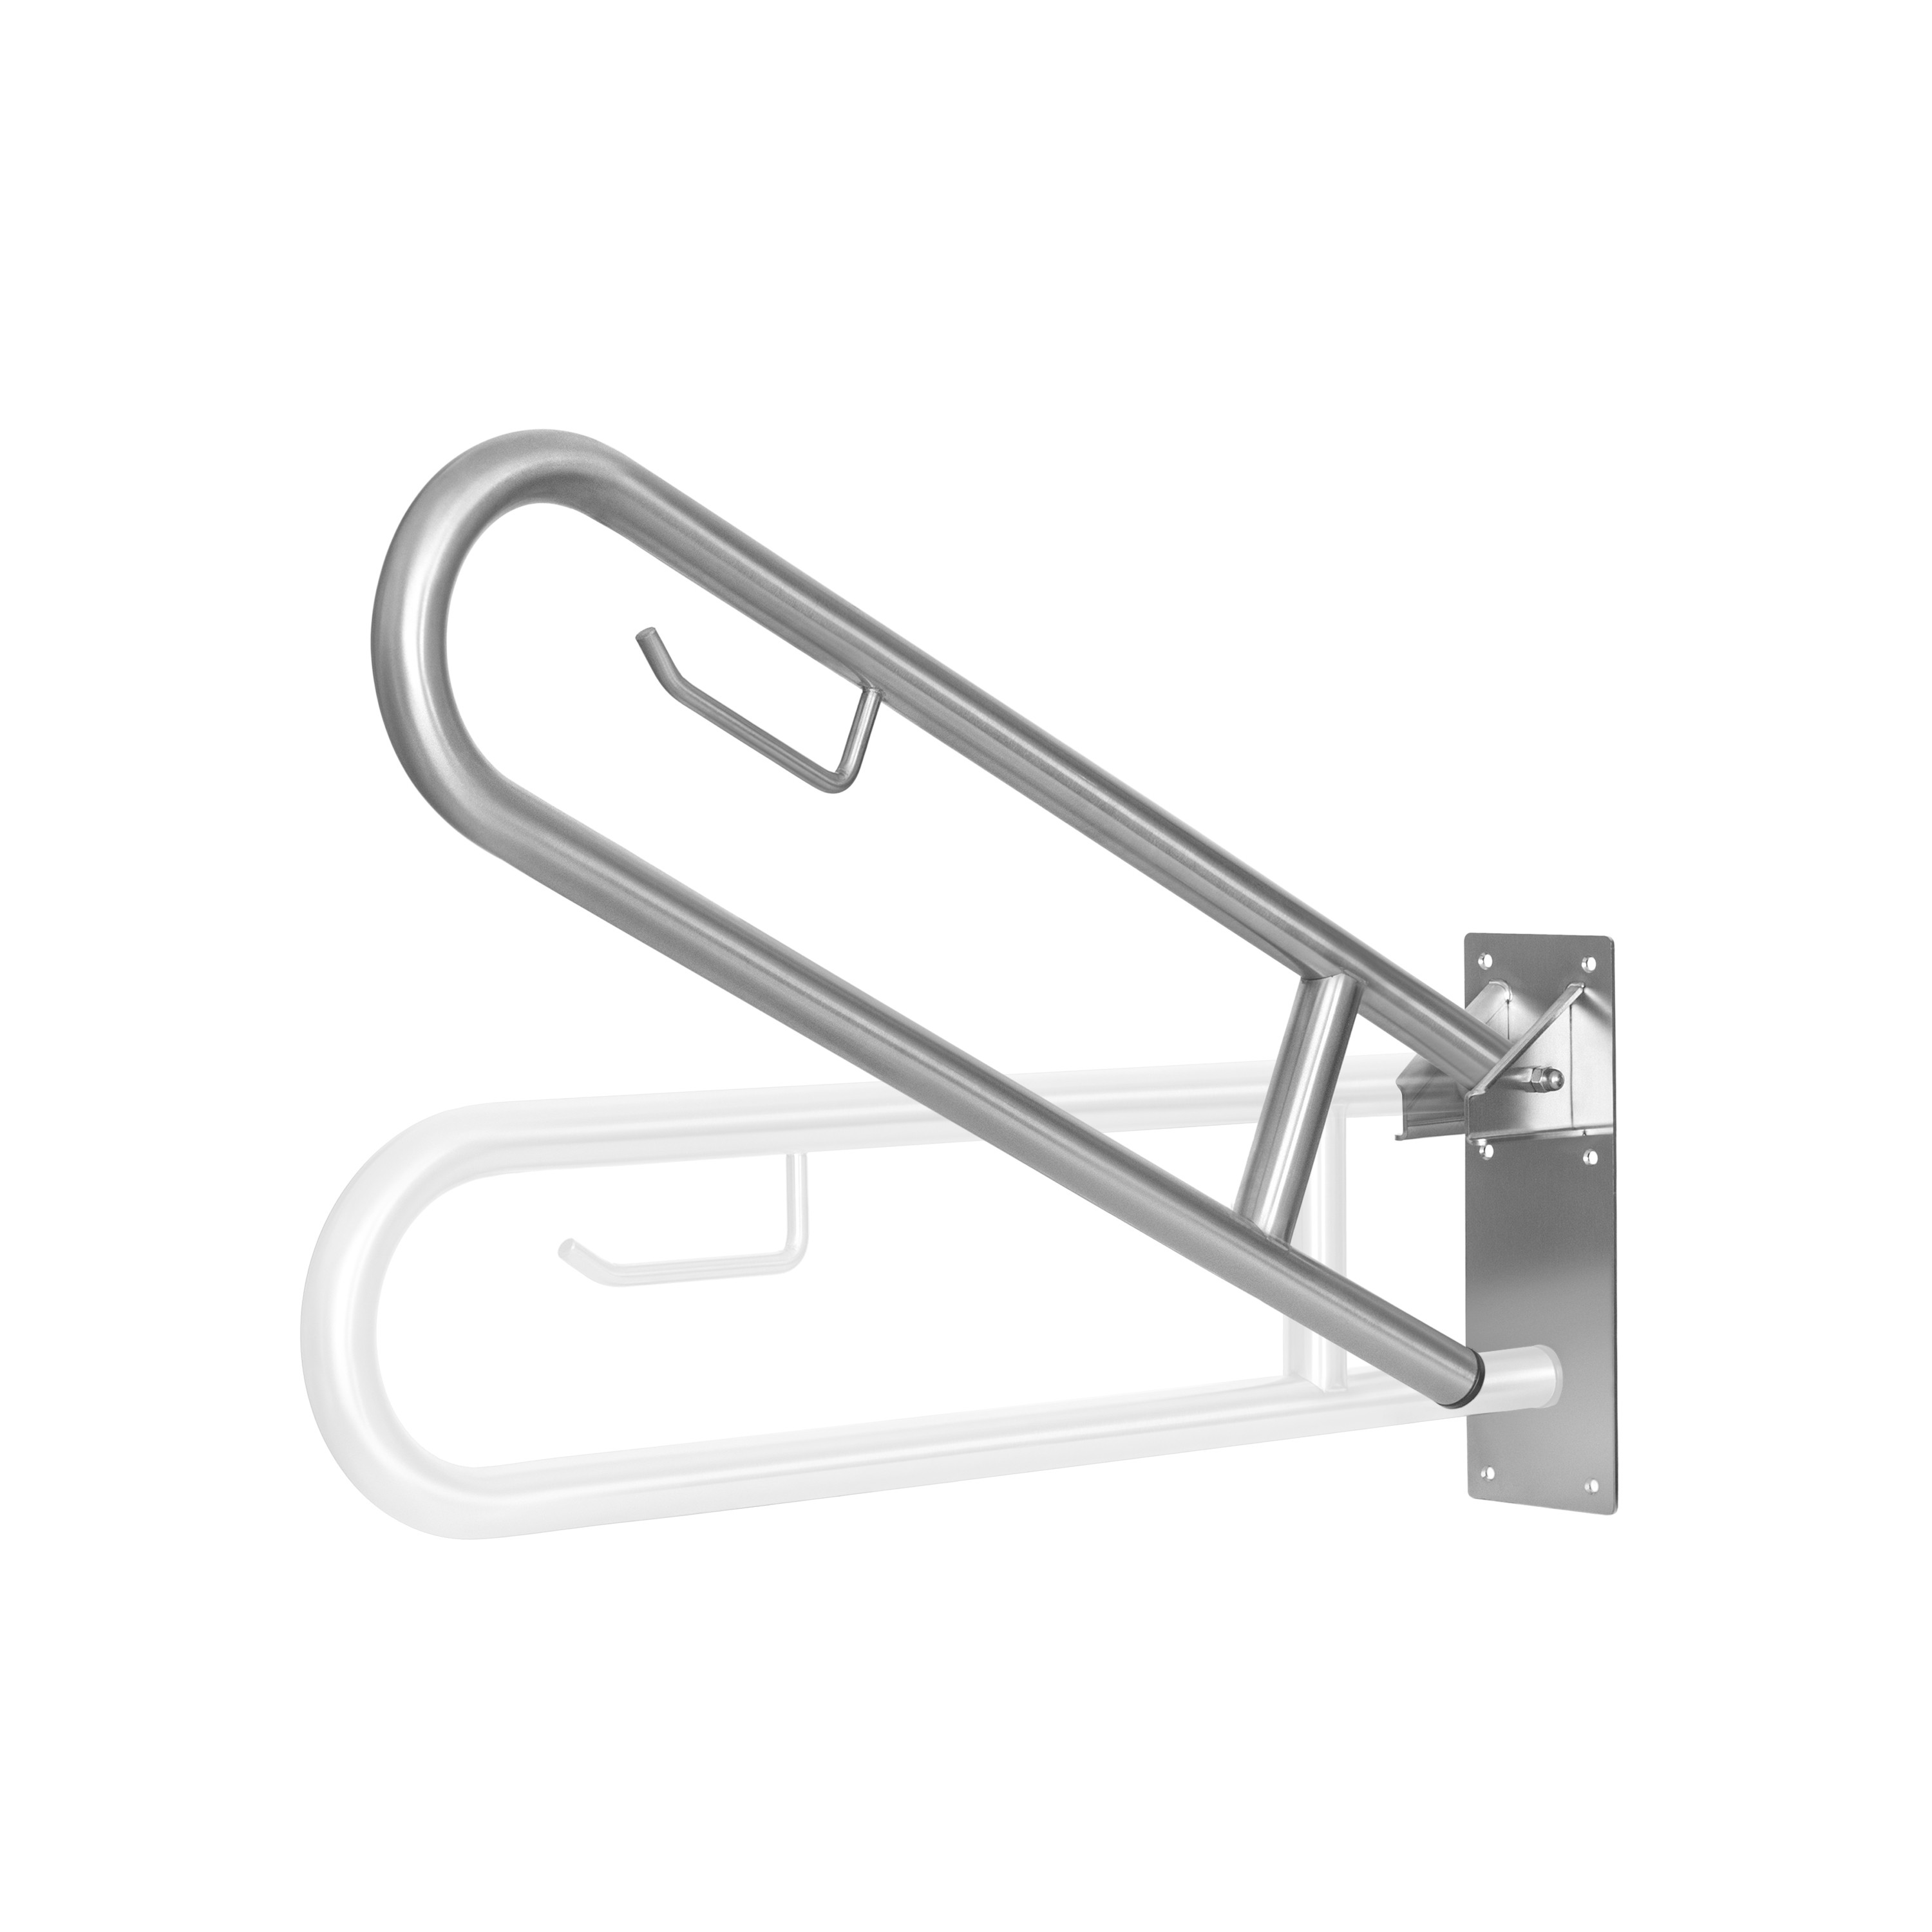 Grab bars, shower seats in stainless steel